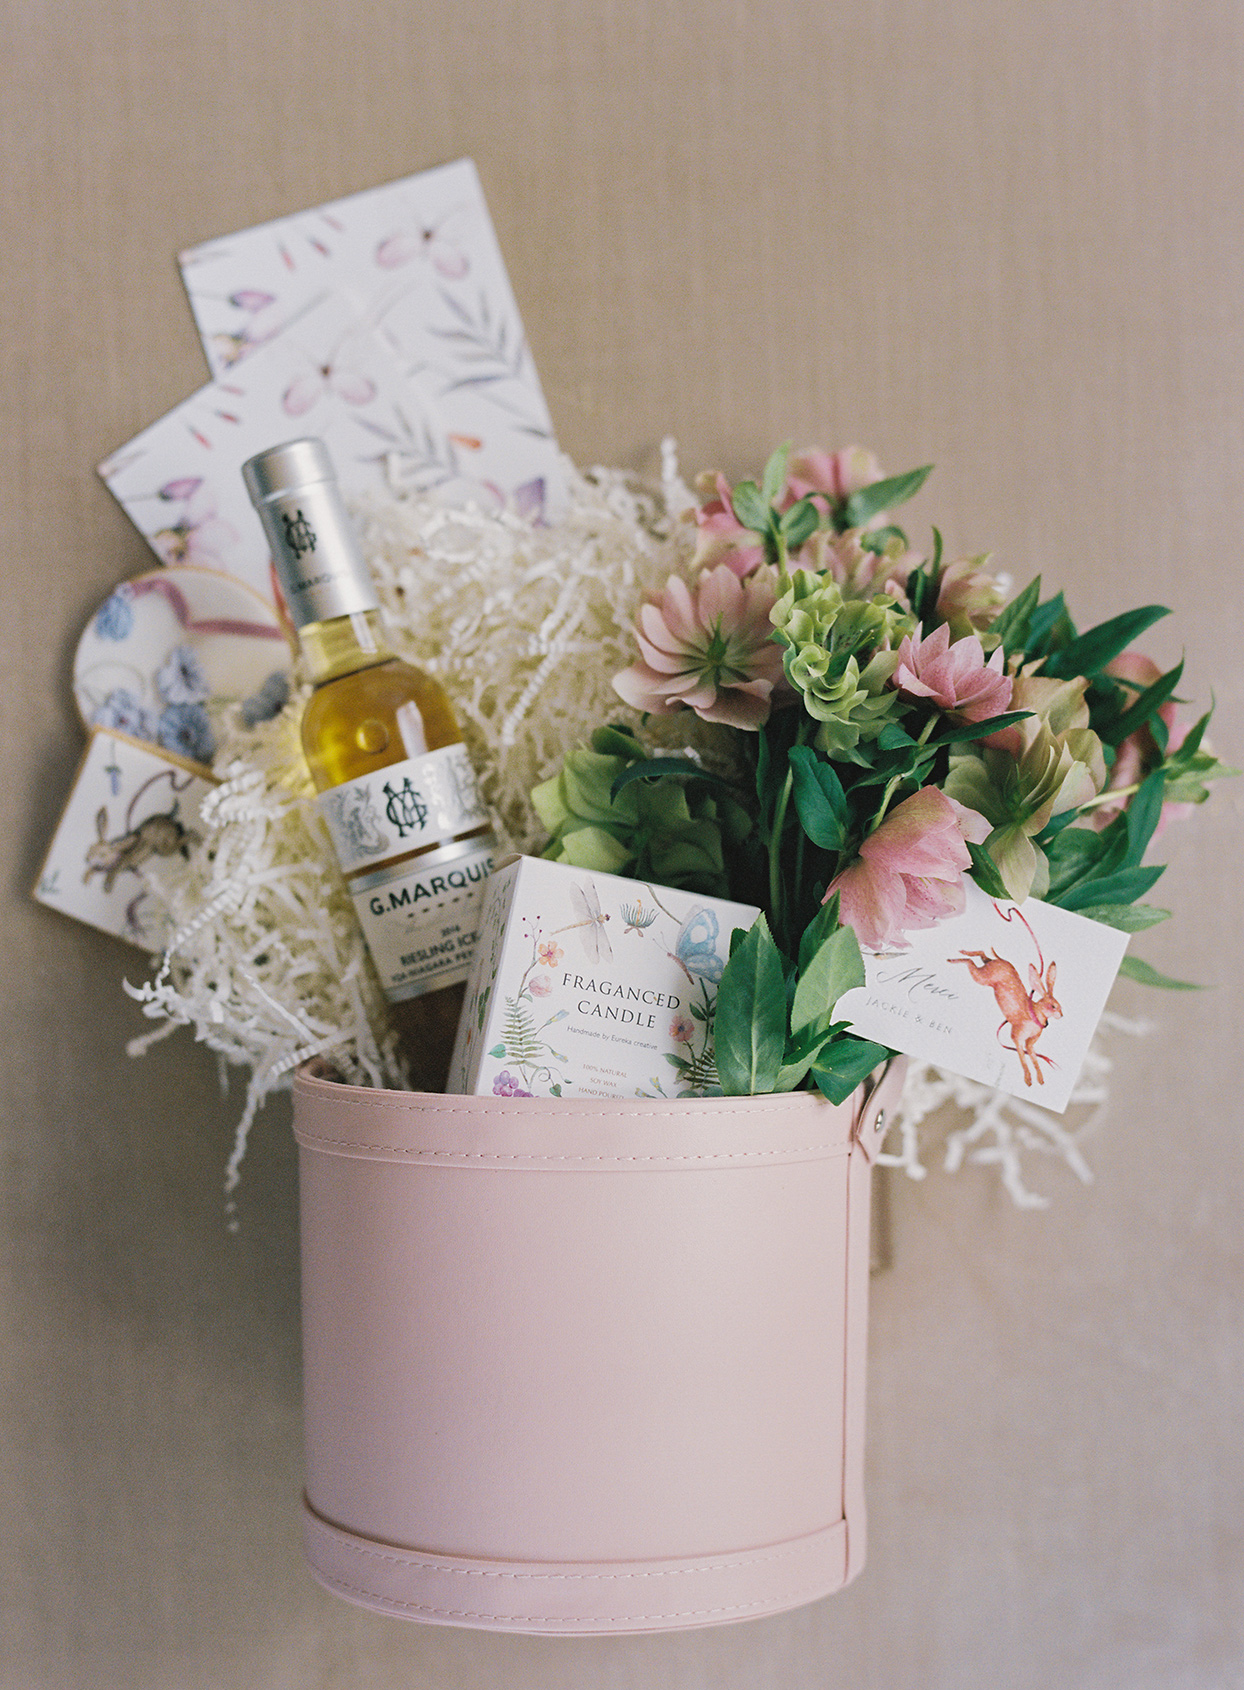 jackie ben wedding favors in pink bucket